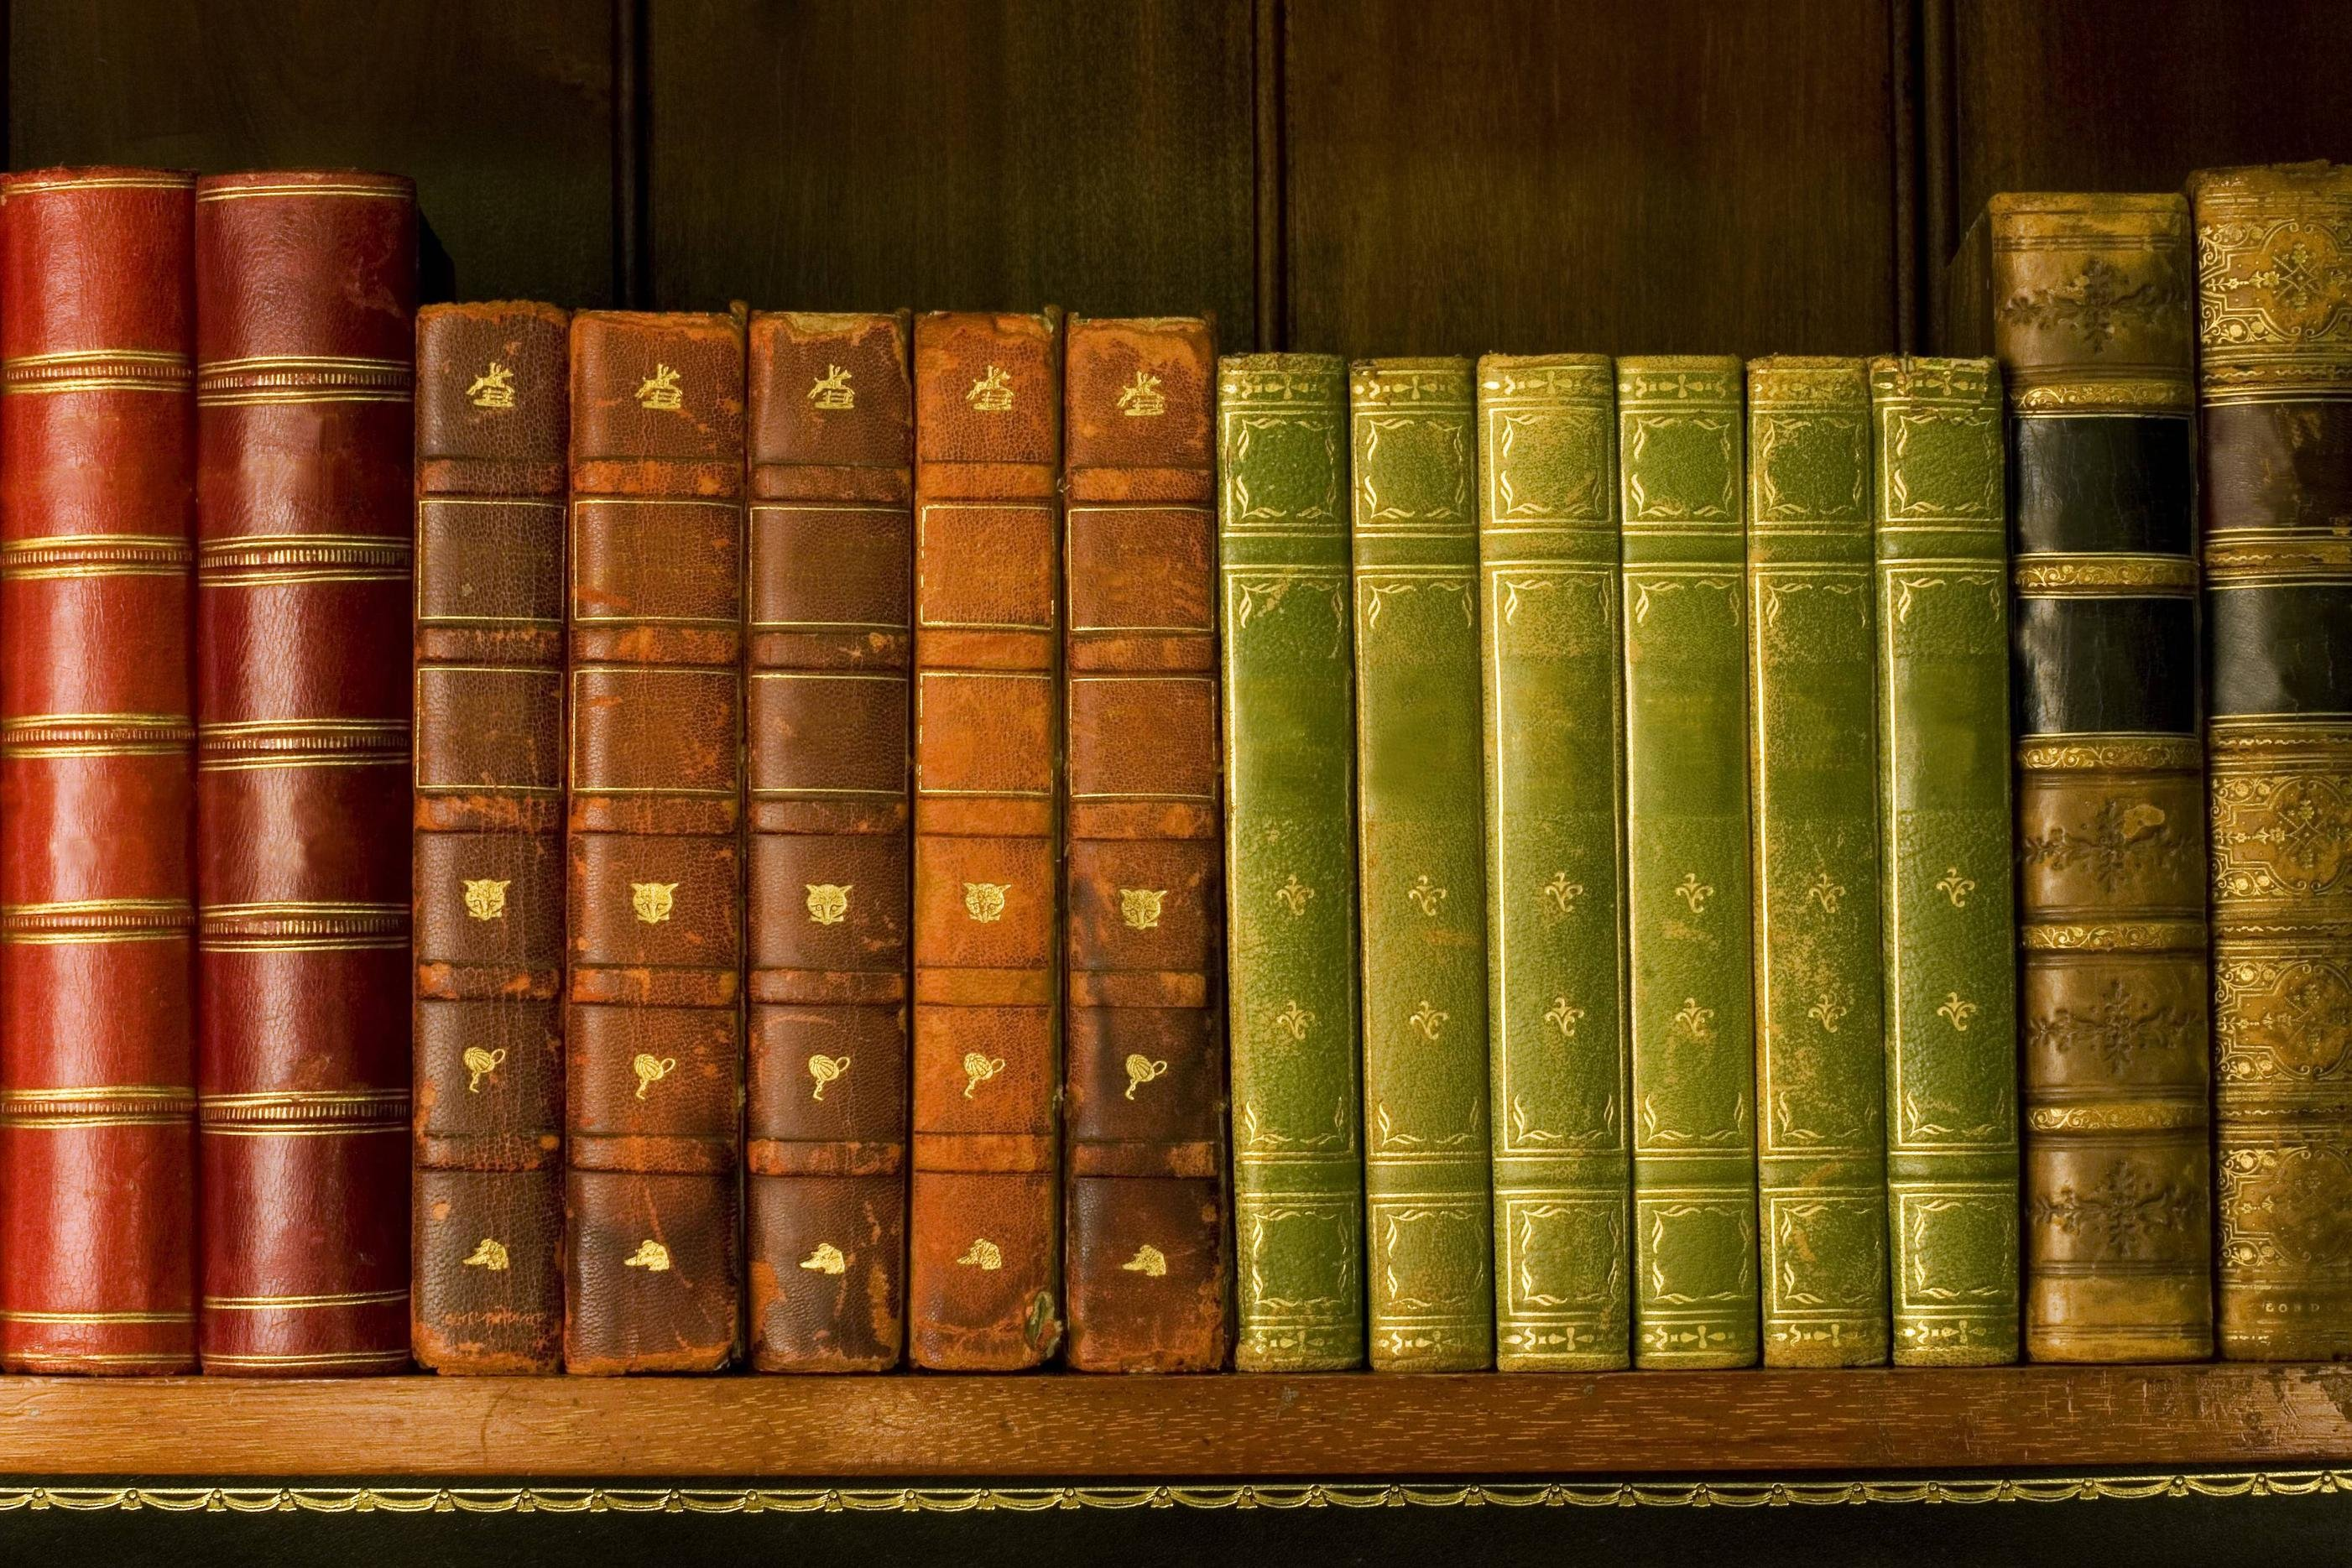 books wallpapers, photos and desktop backgrounds up to 8k [7680x4320